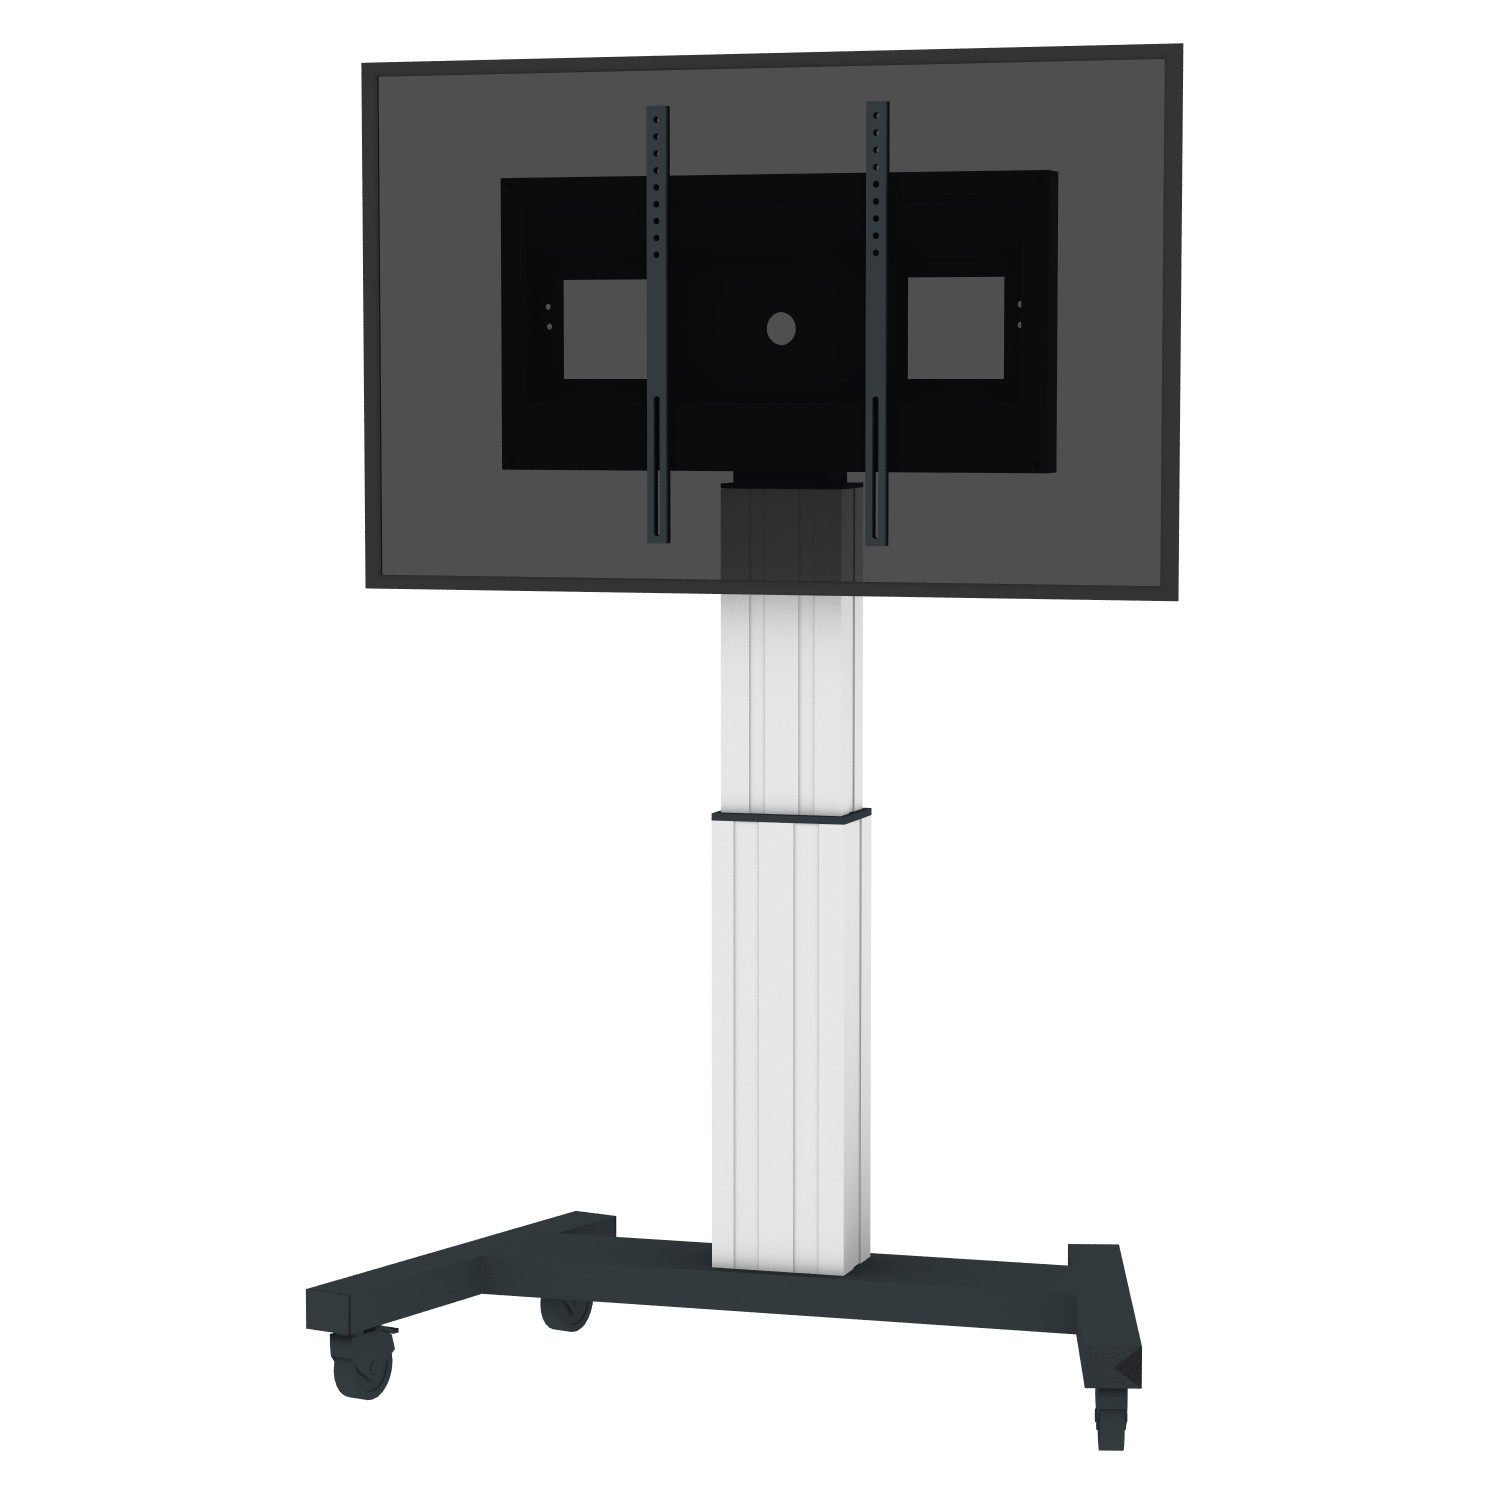 "Conen Mounts SCETAV 100"" Portable flat panel floor stand Alluminio, Nero base da pavimento per tv a schermo piatto"